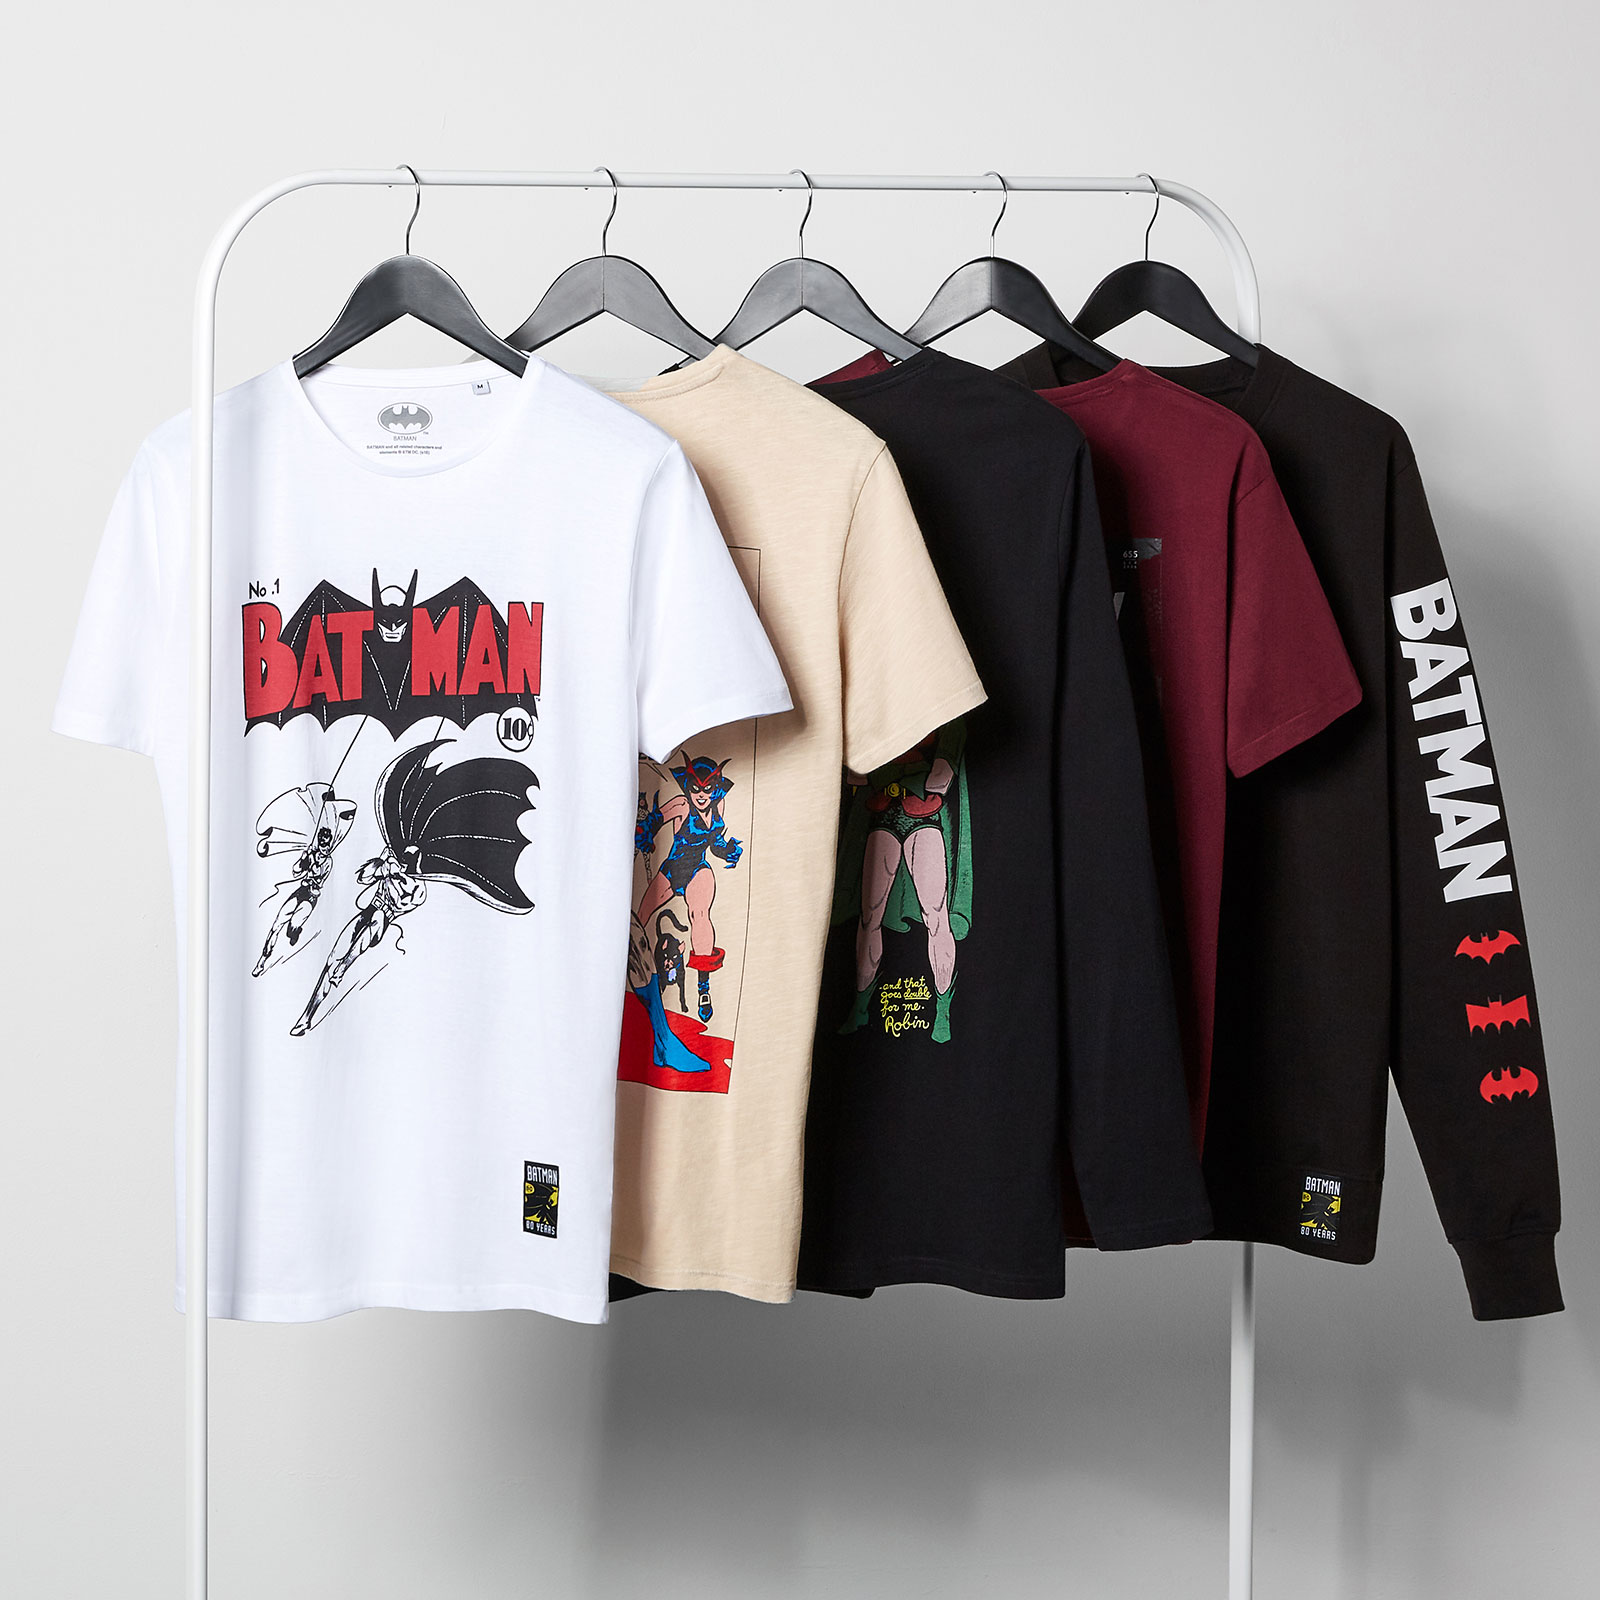 Batman 80th Clothing Rail